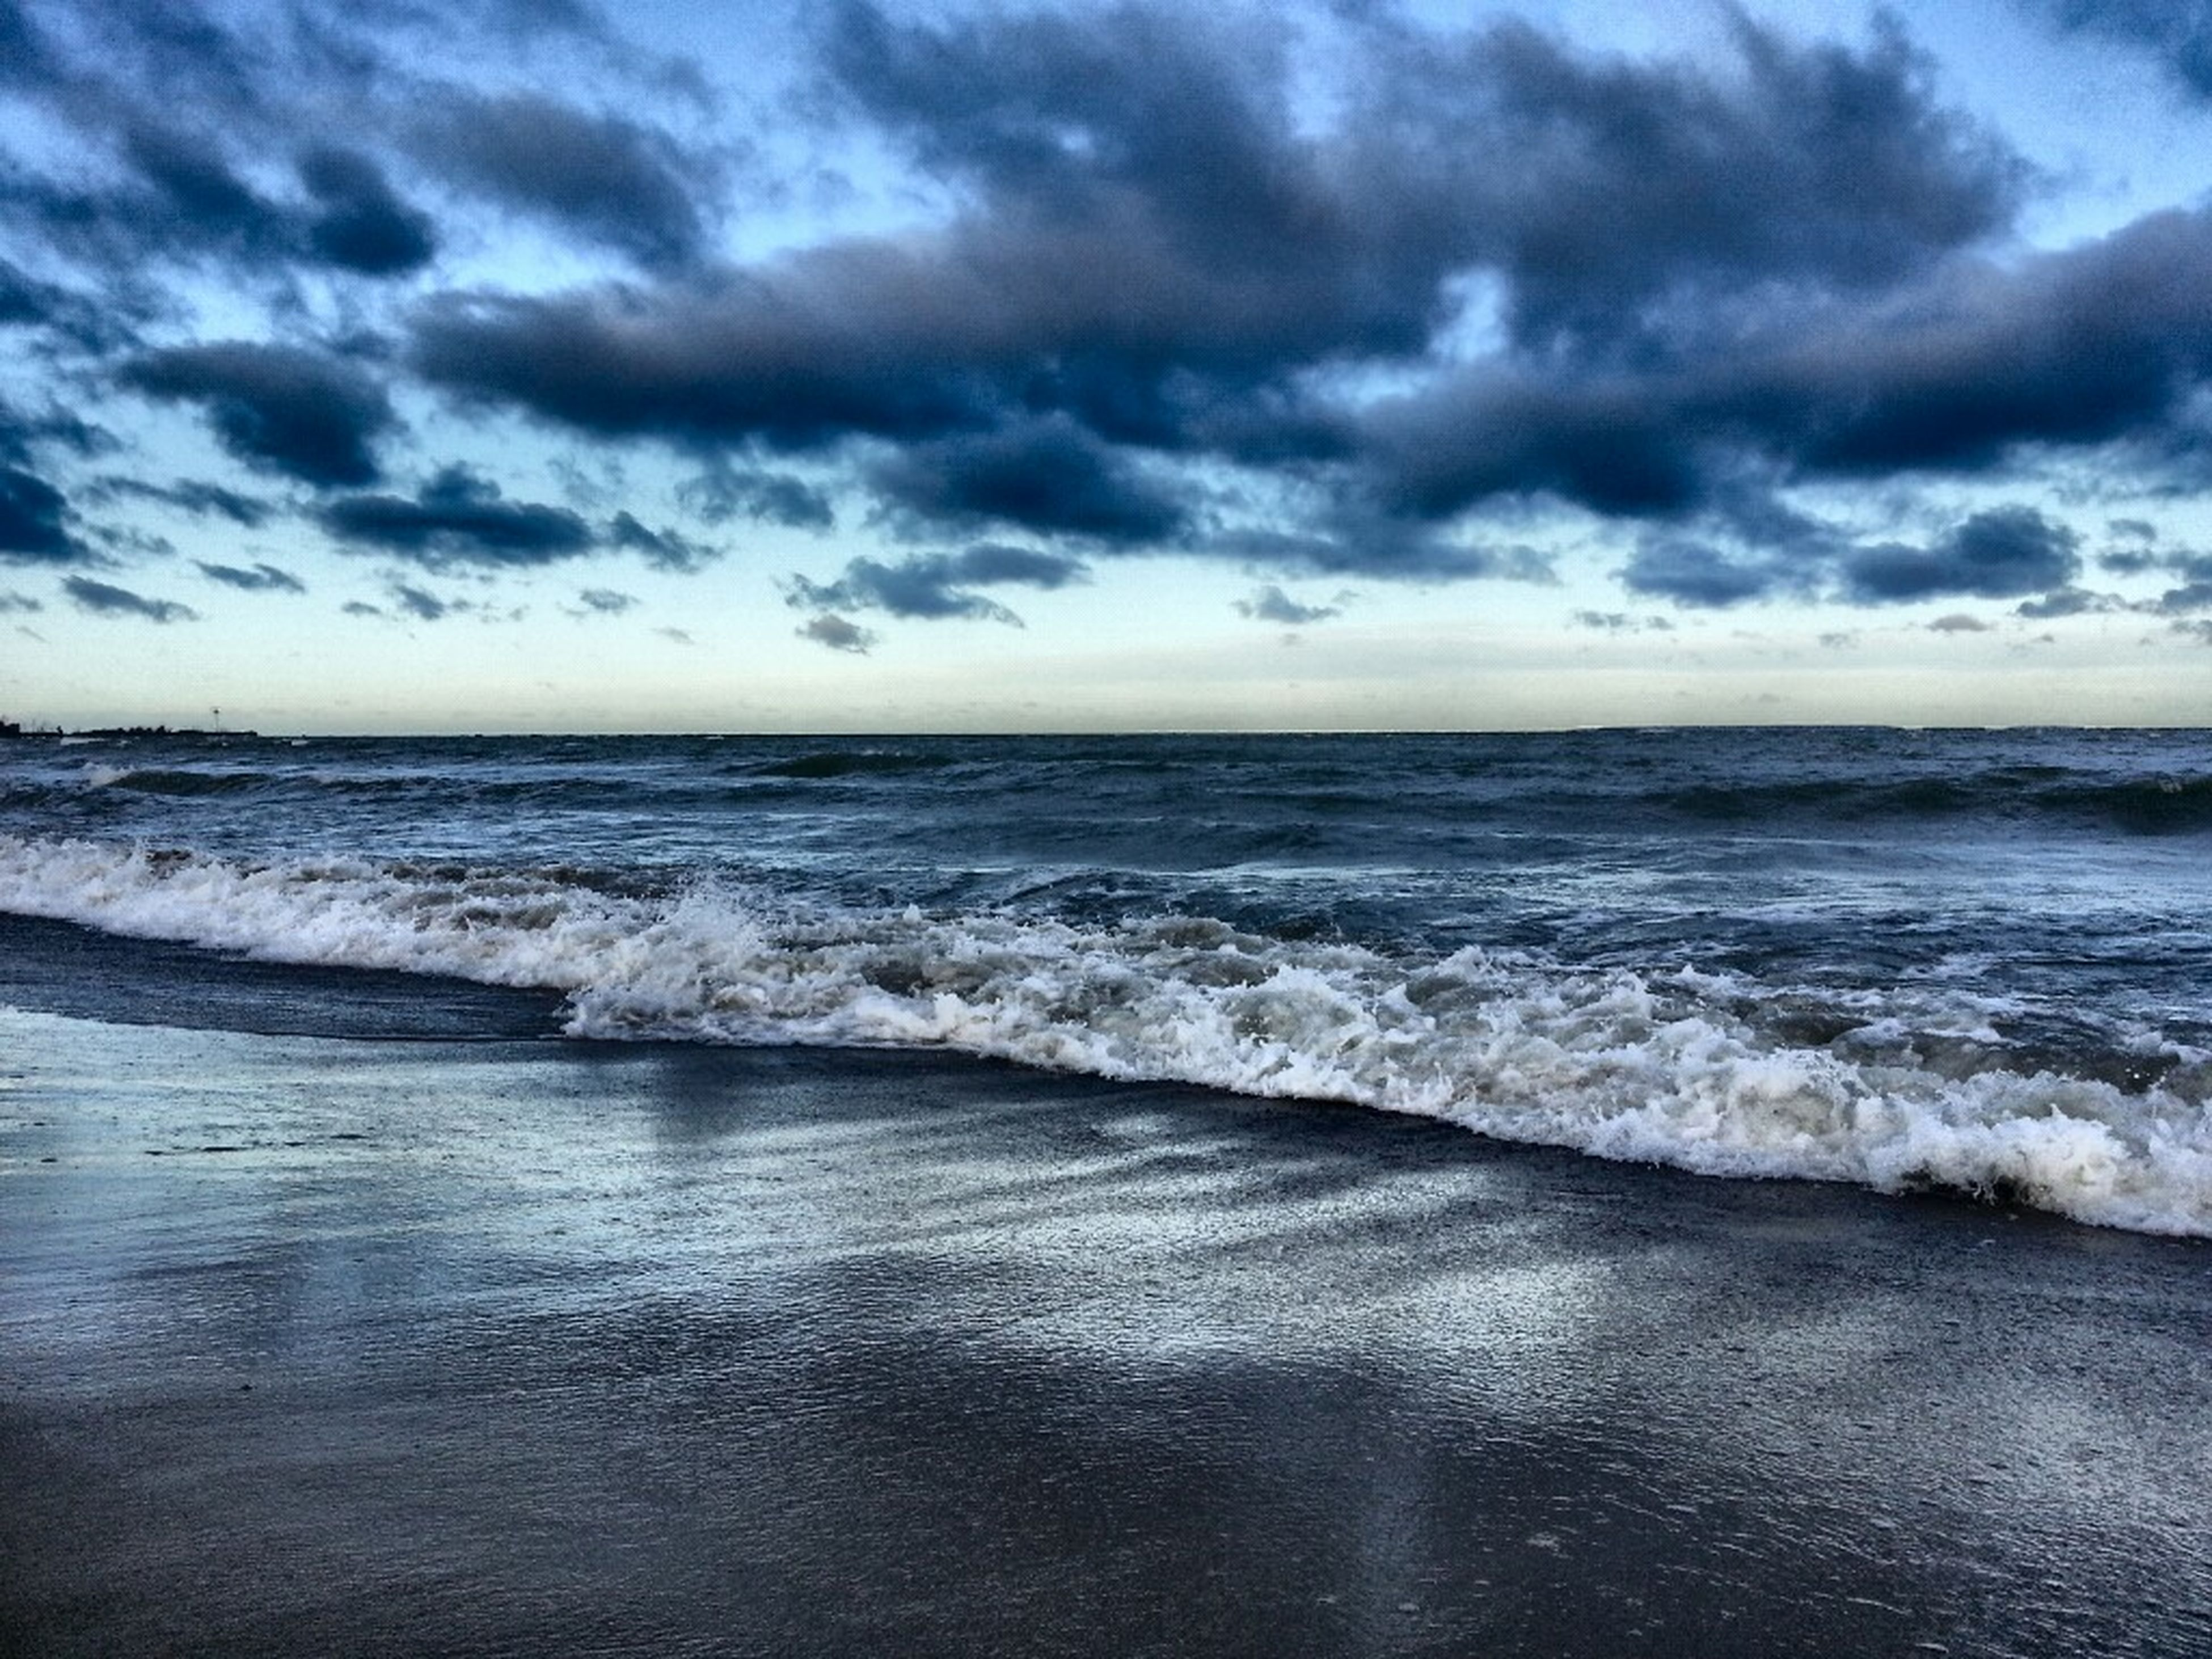 sea, horizon over water, water, sky, scenics, cloud - sky, beauty in nature, tranquil scene, wave, tranquility, beach, cloudy, nature, cloud, shore, idyllic, surf, seascape, weather, overcast